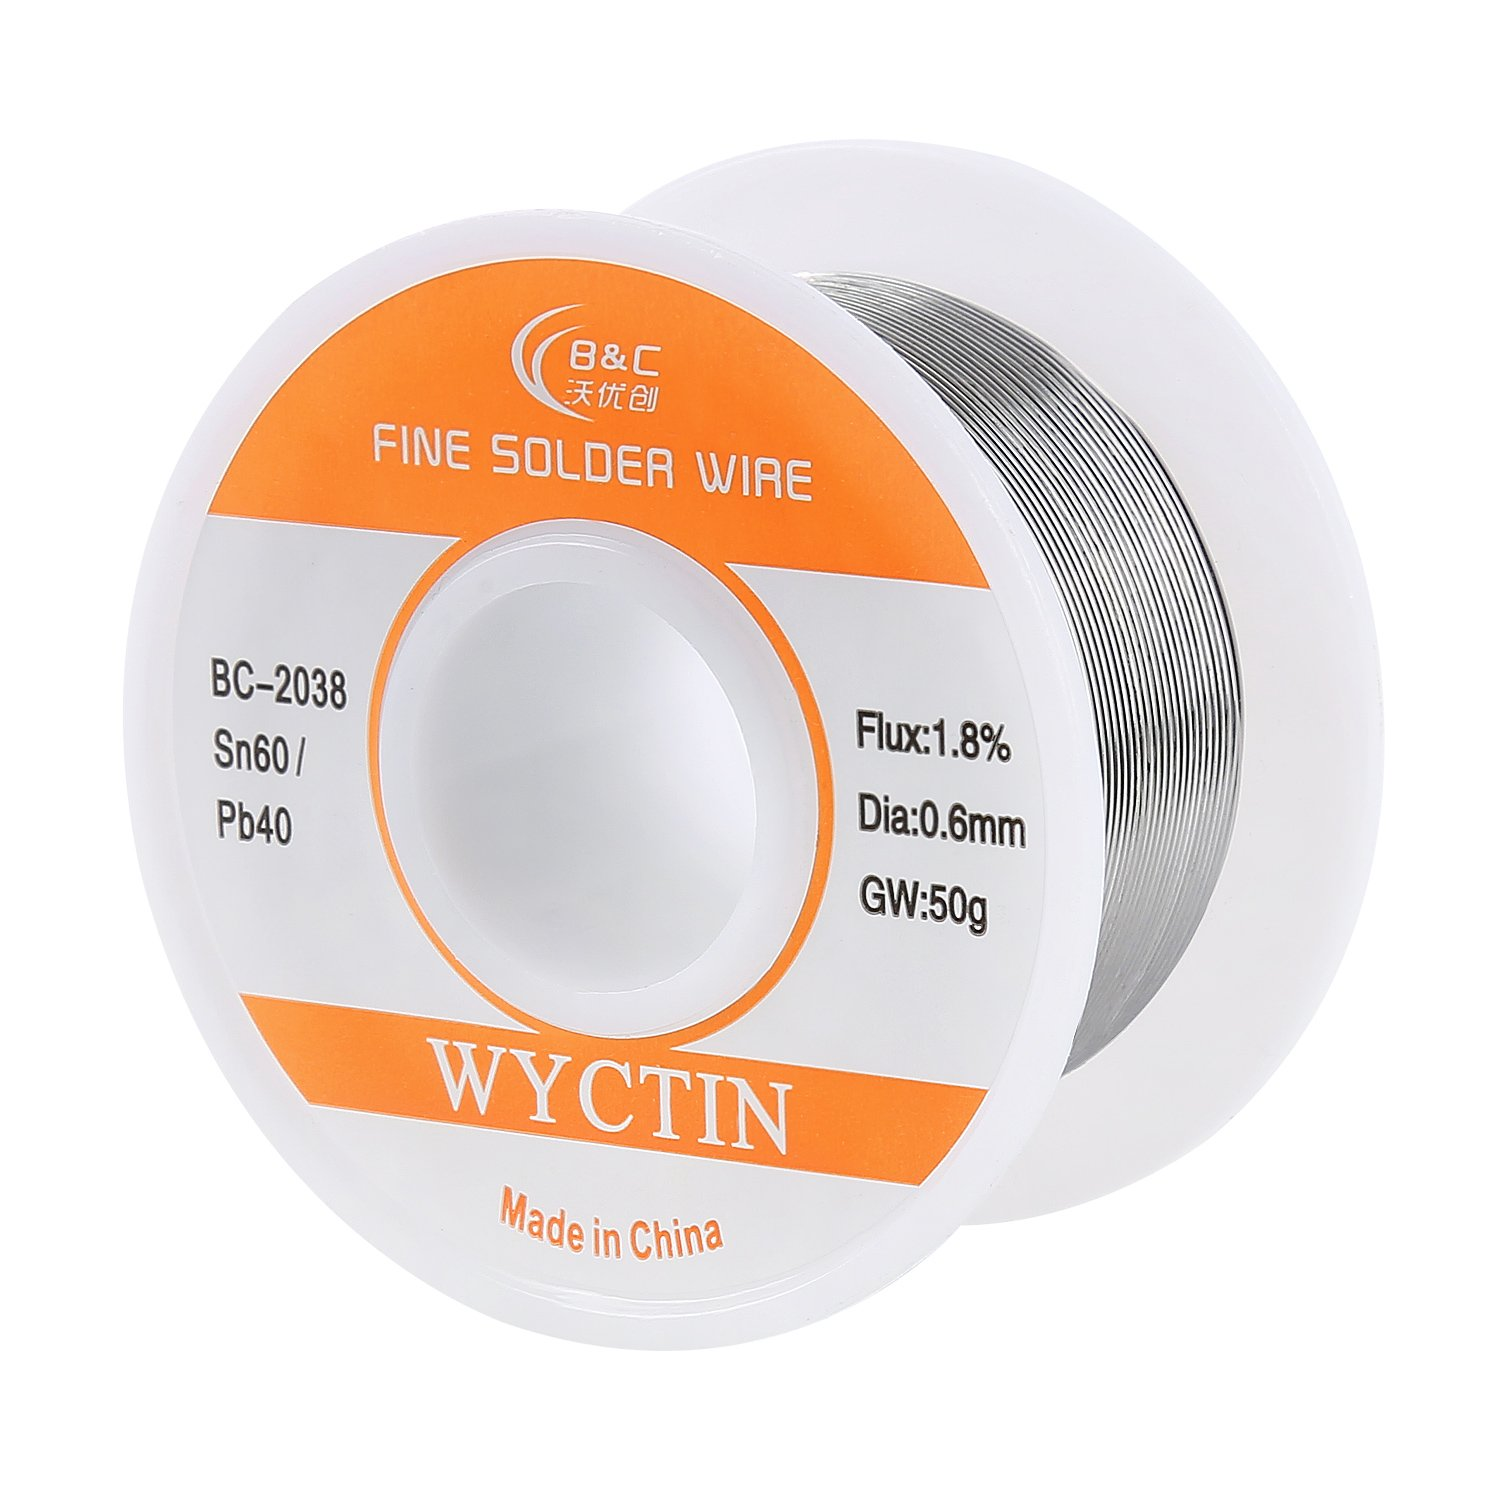 WYCTIN 60-40 Tin Lead Rosin Core Solder Wire for Electrical Soldering and DIY 0.0236